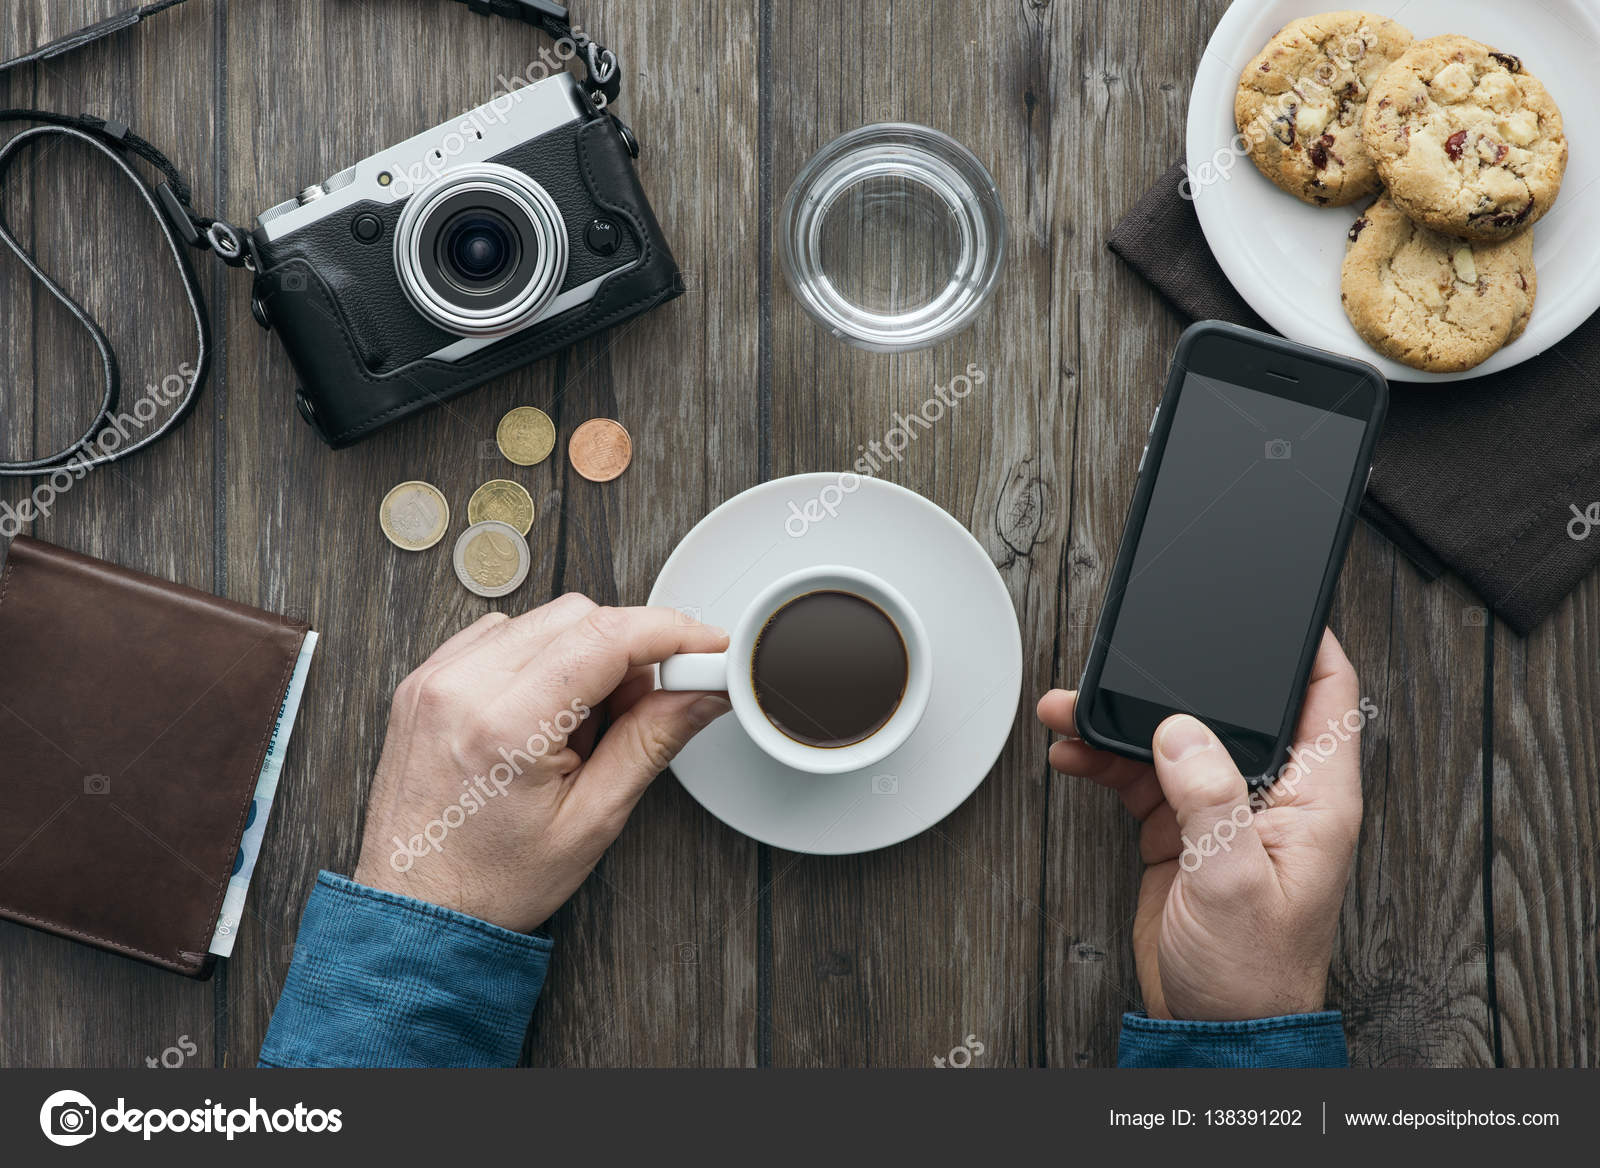 how to clear cache and cookies on iphone appareil photo vintage tablet une tasse de caf 233 et des 20769